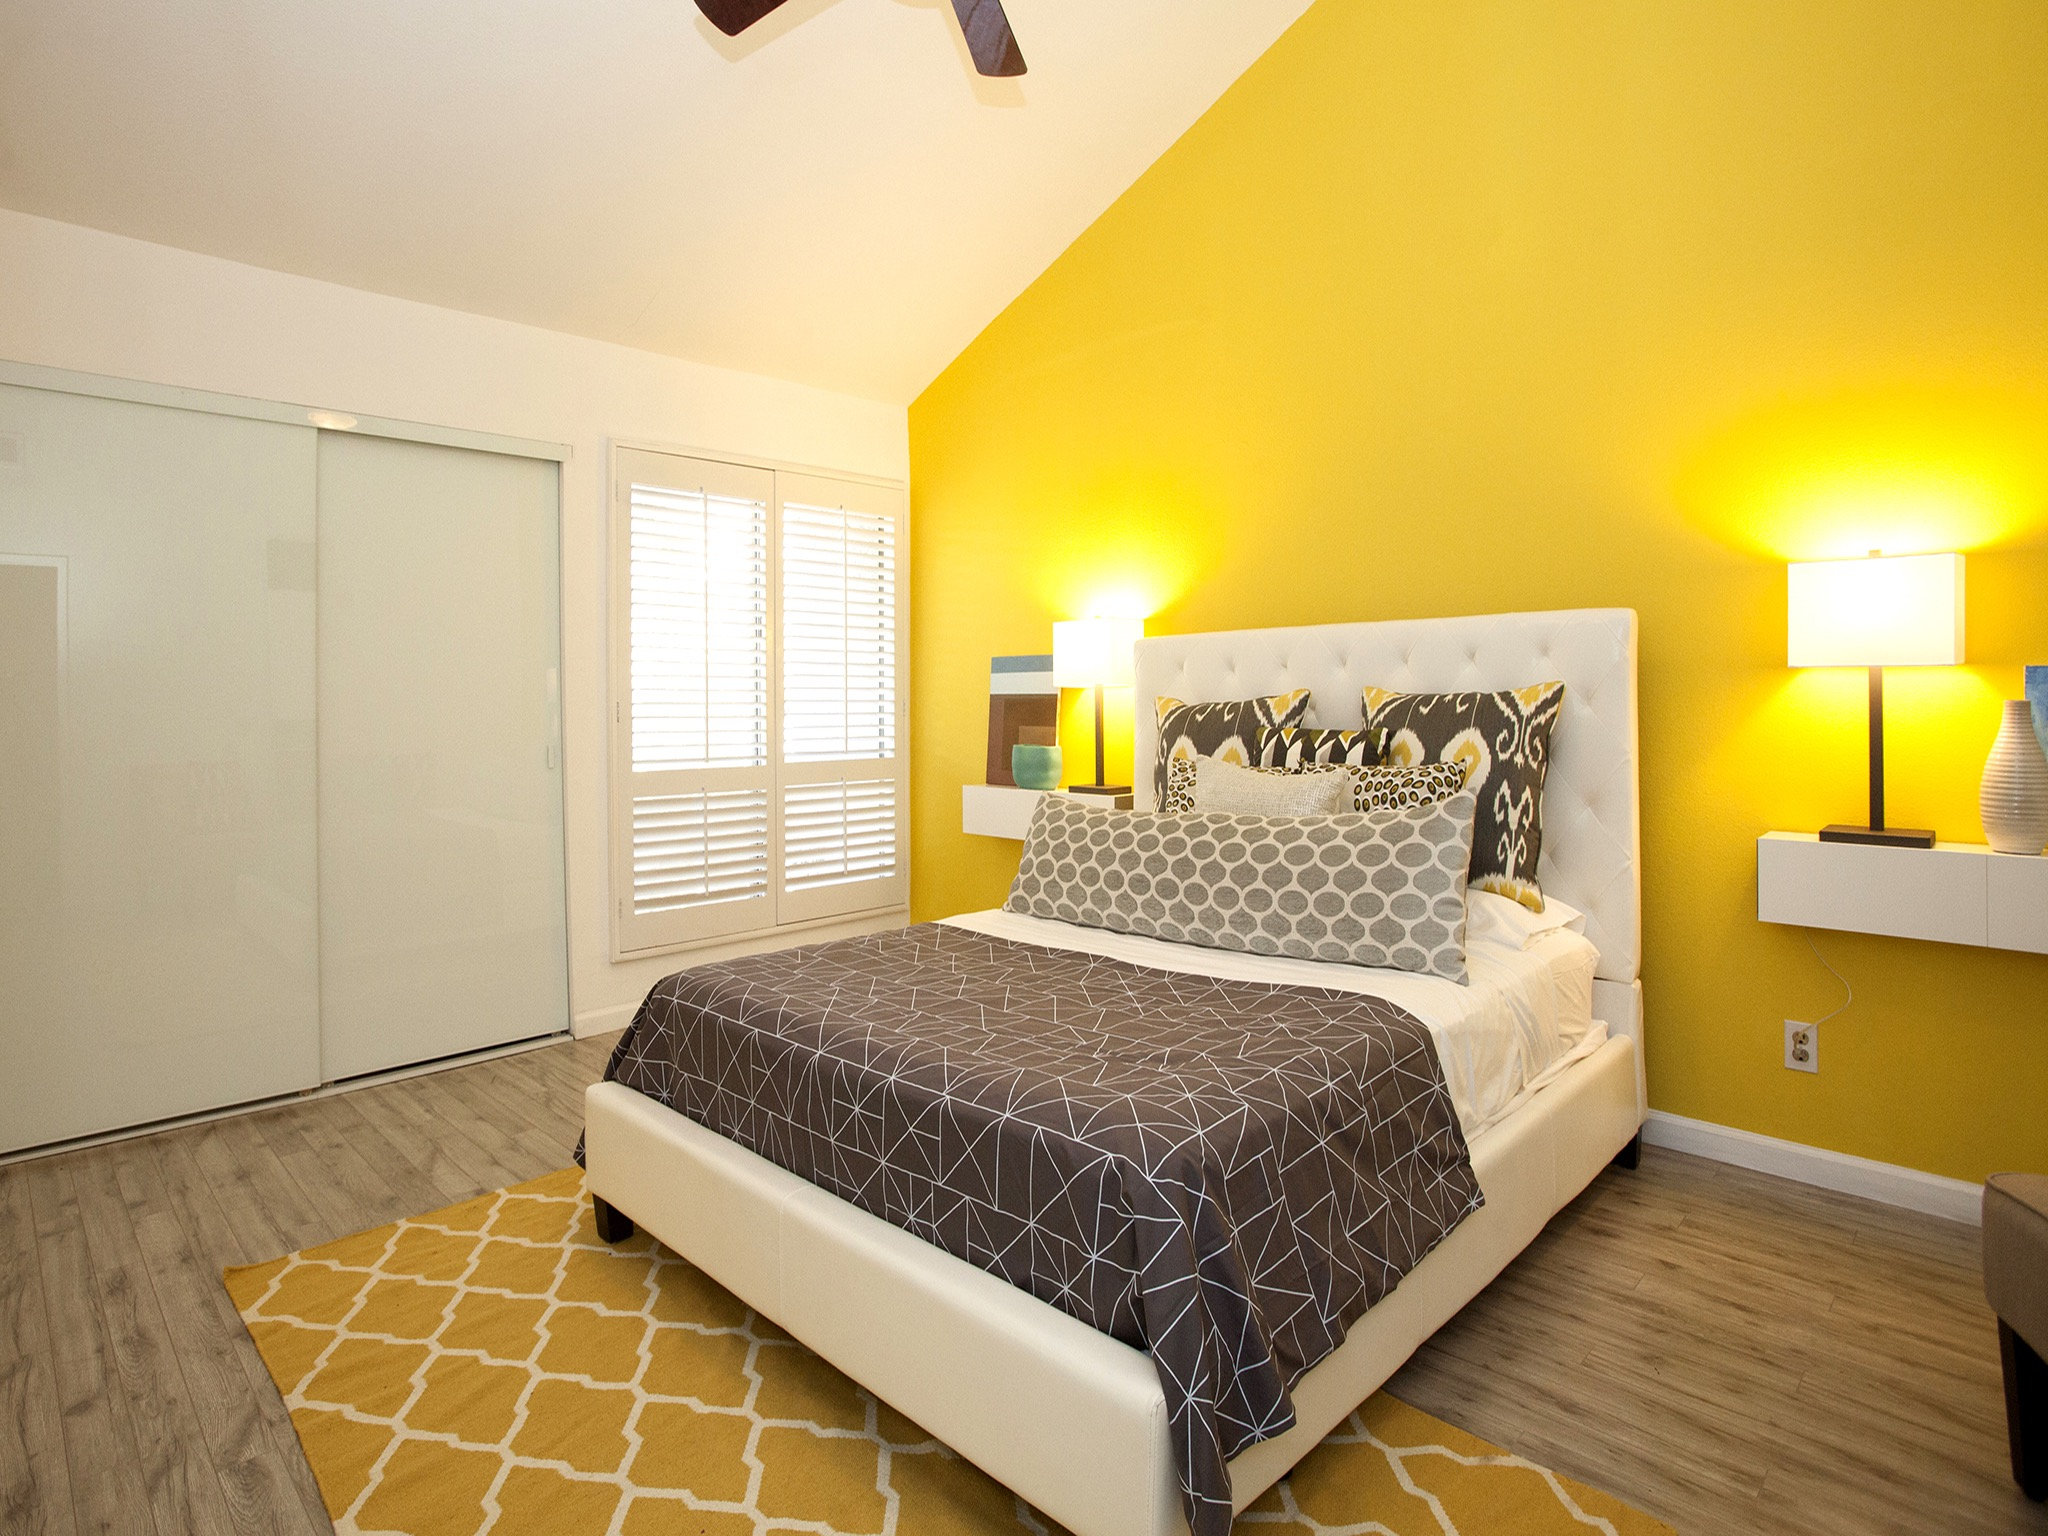 Modern Bedroom With Bright Yellow Accent Wall (View 10 of 23)